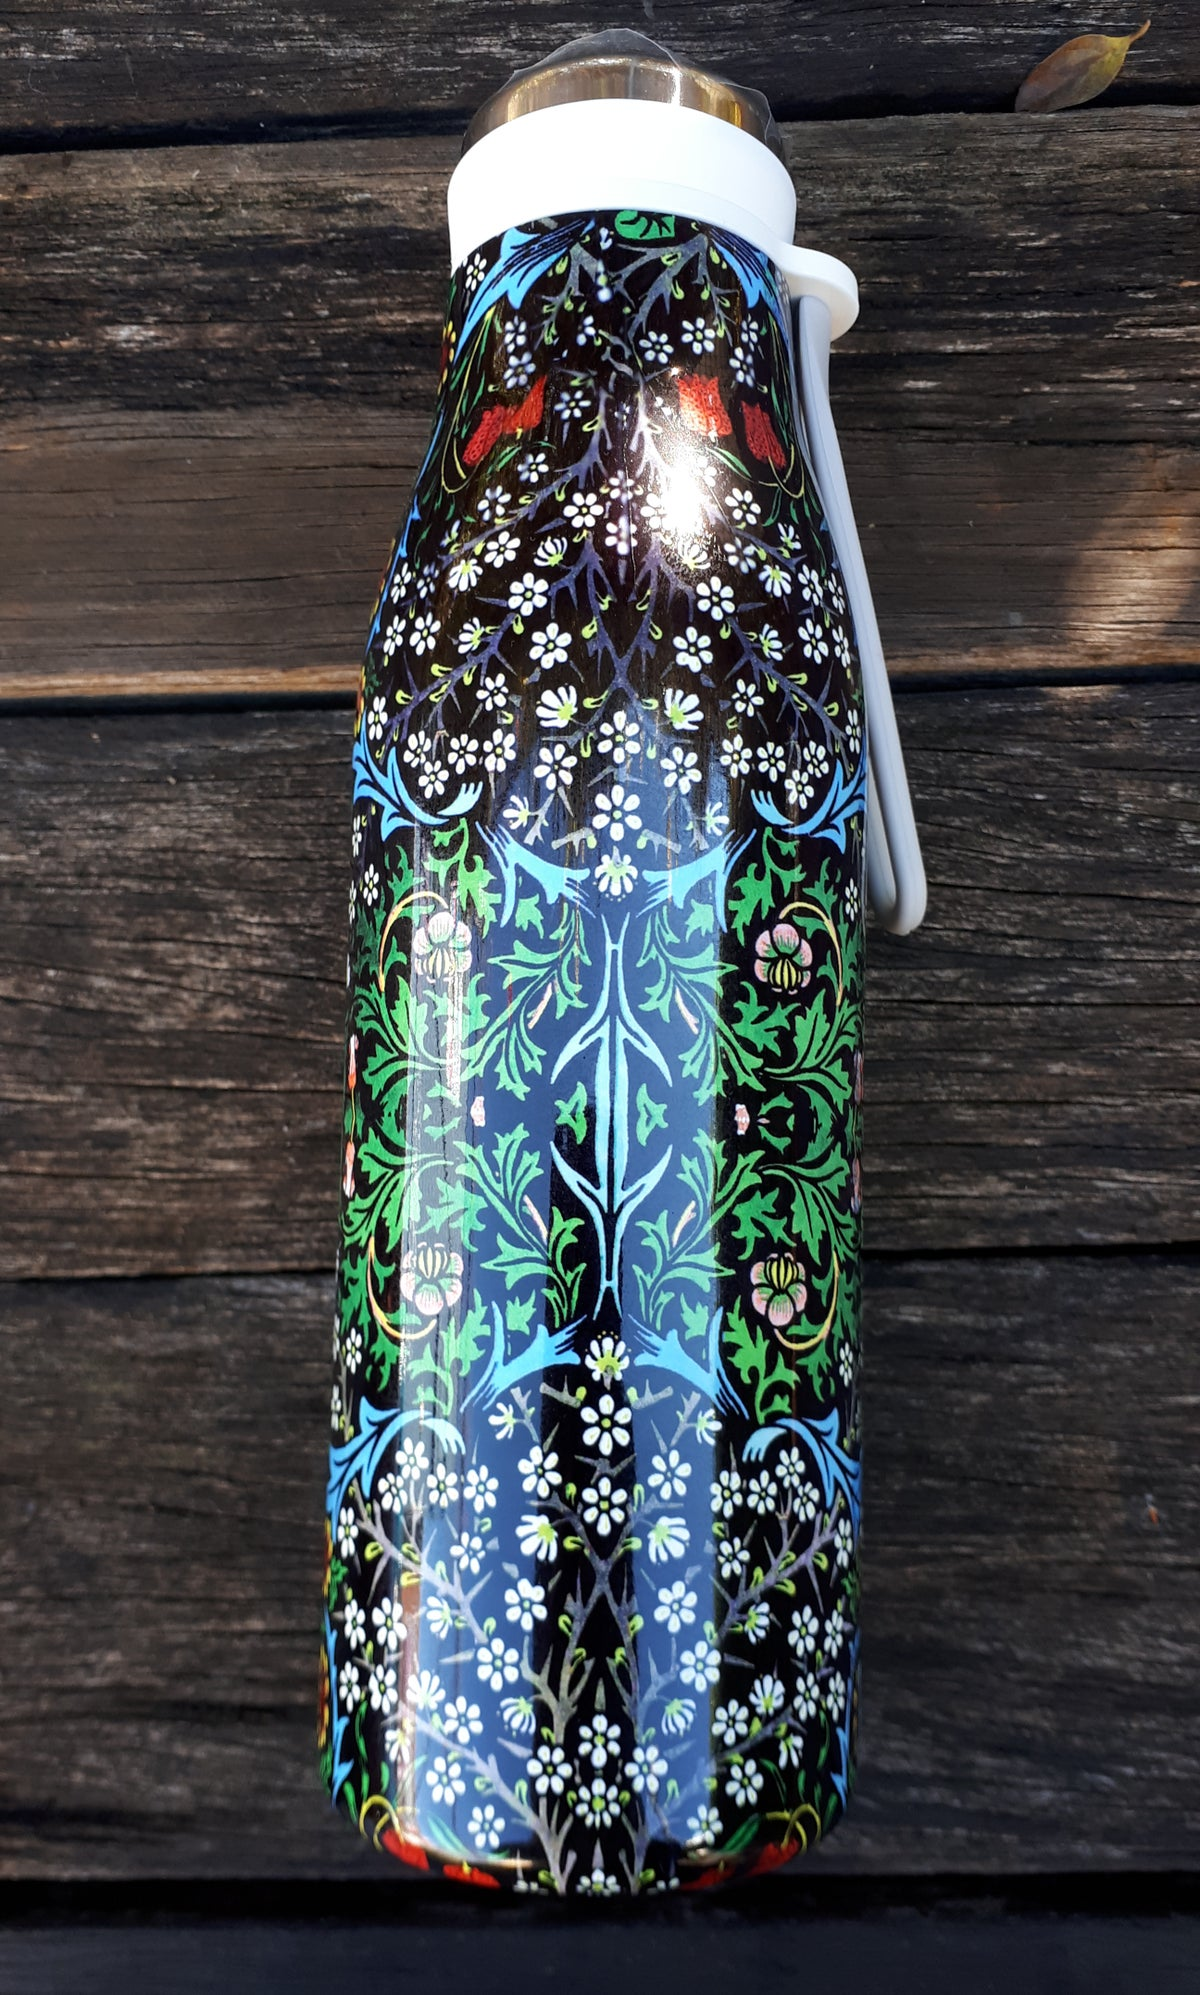 Image of William Morris Drink Bottle - Blackthorn design